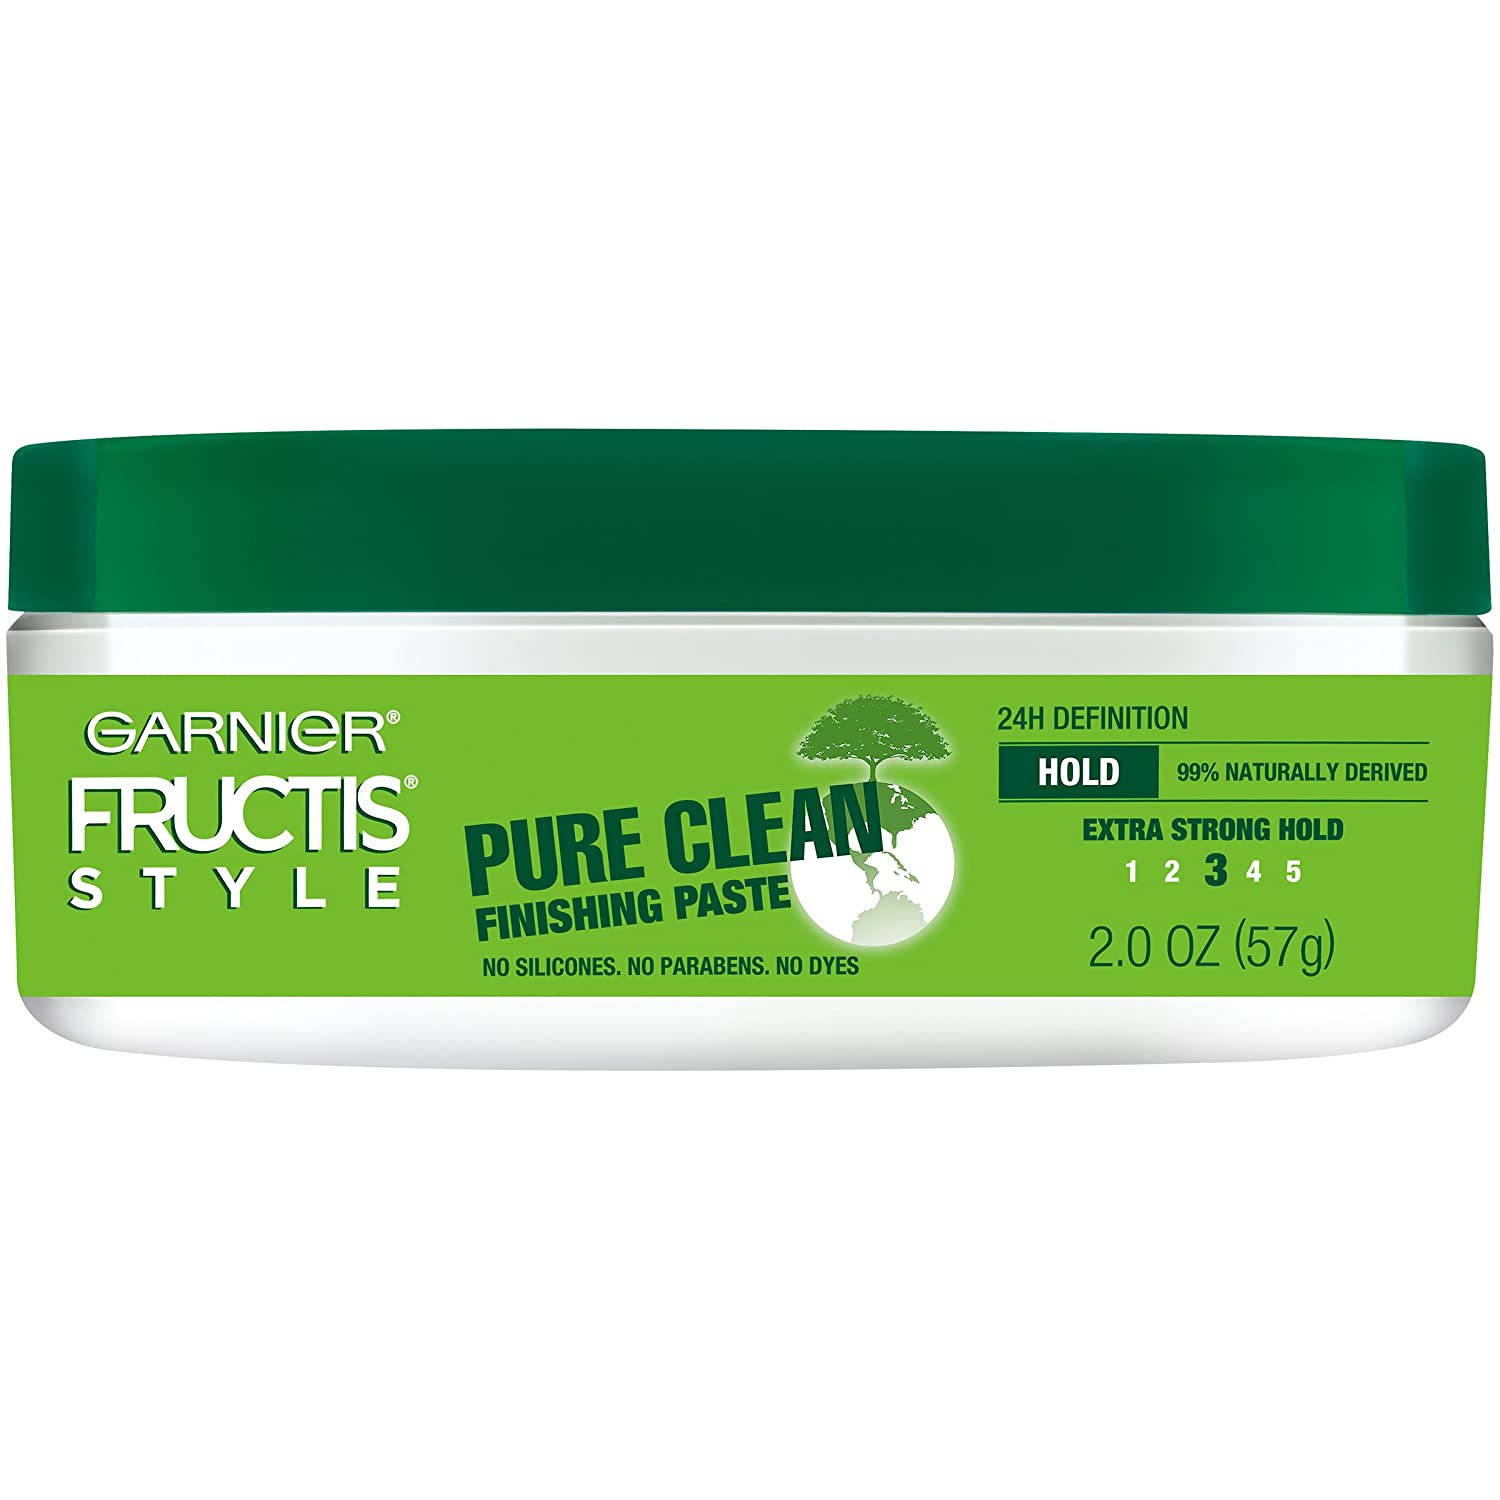 Garnier Fructis Style Pure Clean Finishing Paste for Hair,2 Ounce Jar, (Packaging May Vary)